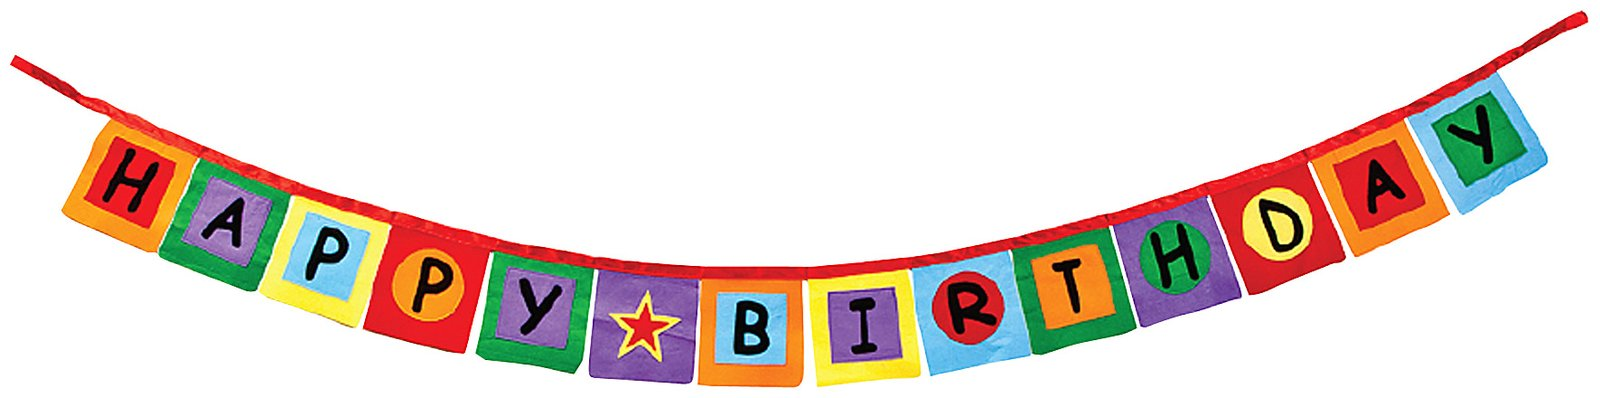 Happy birthday banners clipart svg free library Free Party Banner Cliparts, Download Free Clip Art, Free Clip Art on ... svg free library